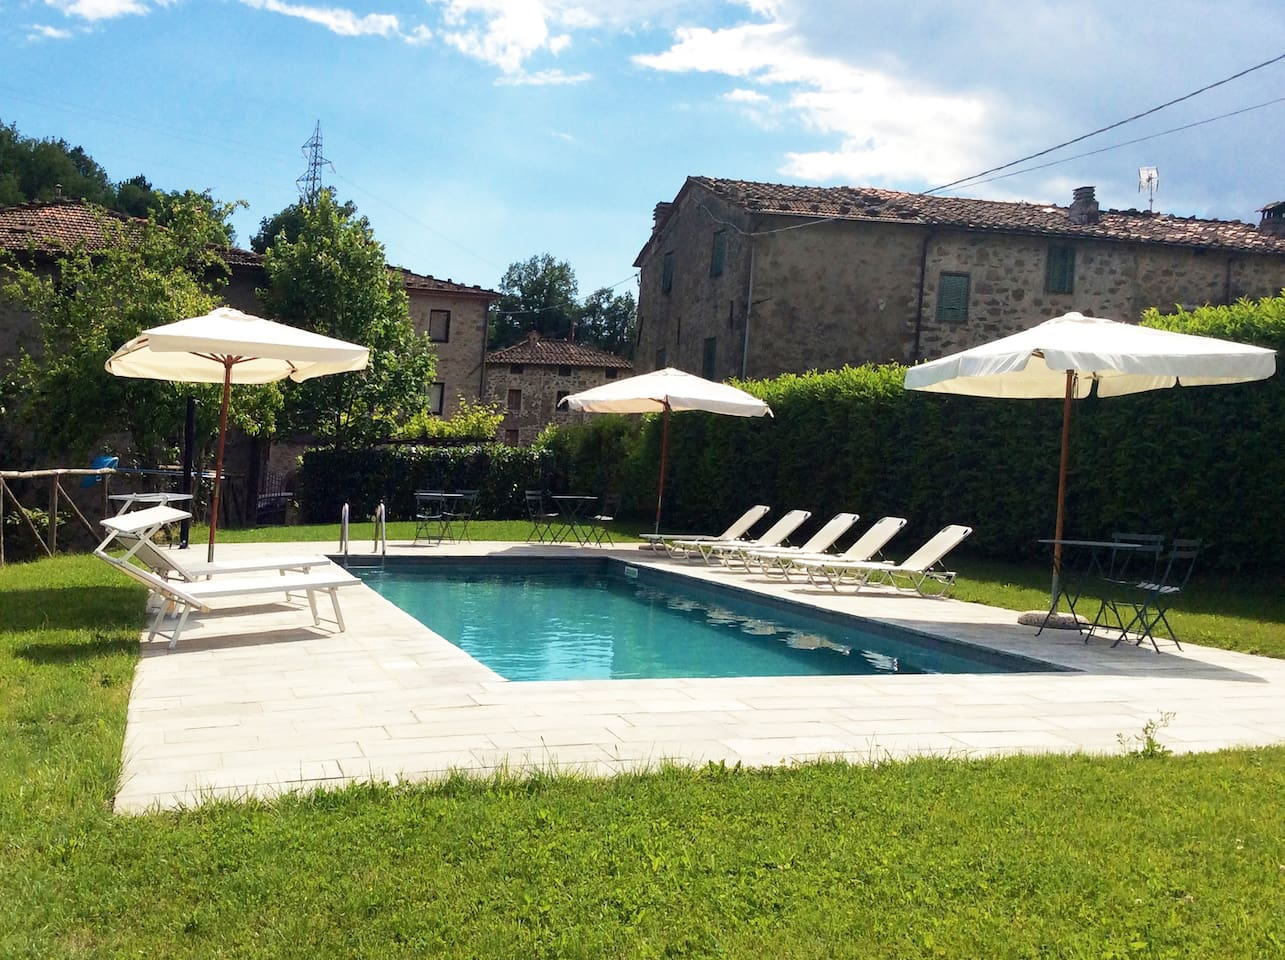 shared pool (4x10m) at walking distance